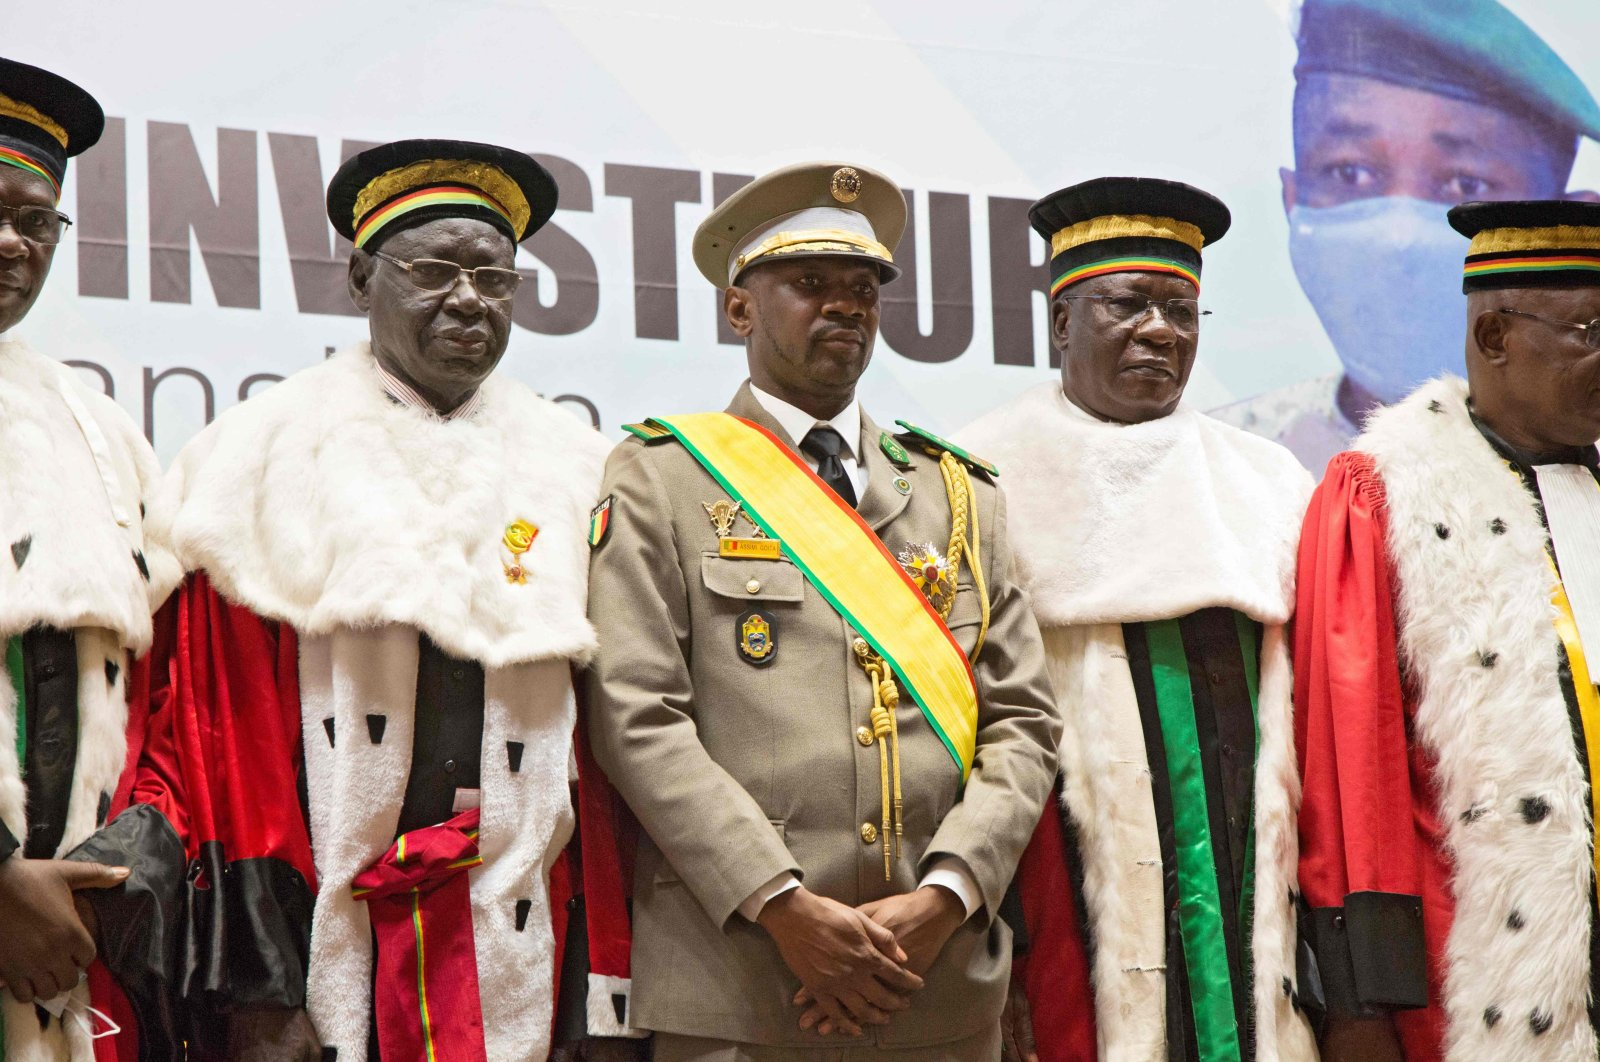 Interim Malian President, Colonel Assimi Goita (C), stands with members of the Supreme Court during his swearing in ceremony in Bamako, Mali, June 7, 2021. (AFP Photo)